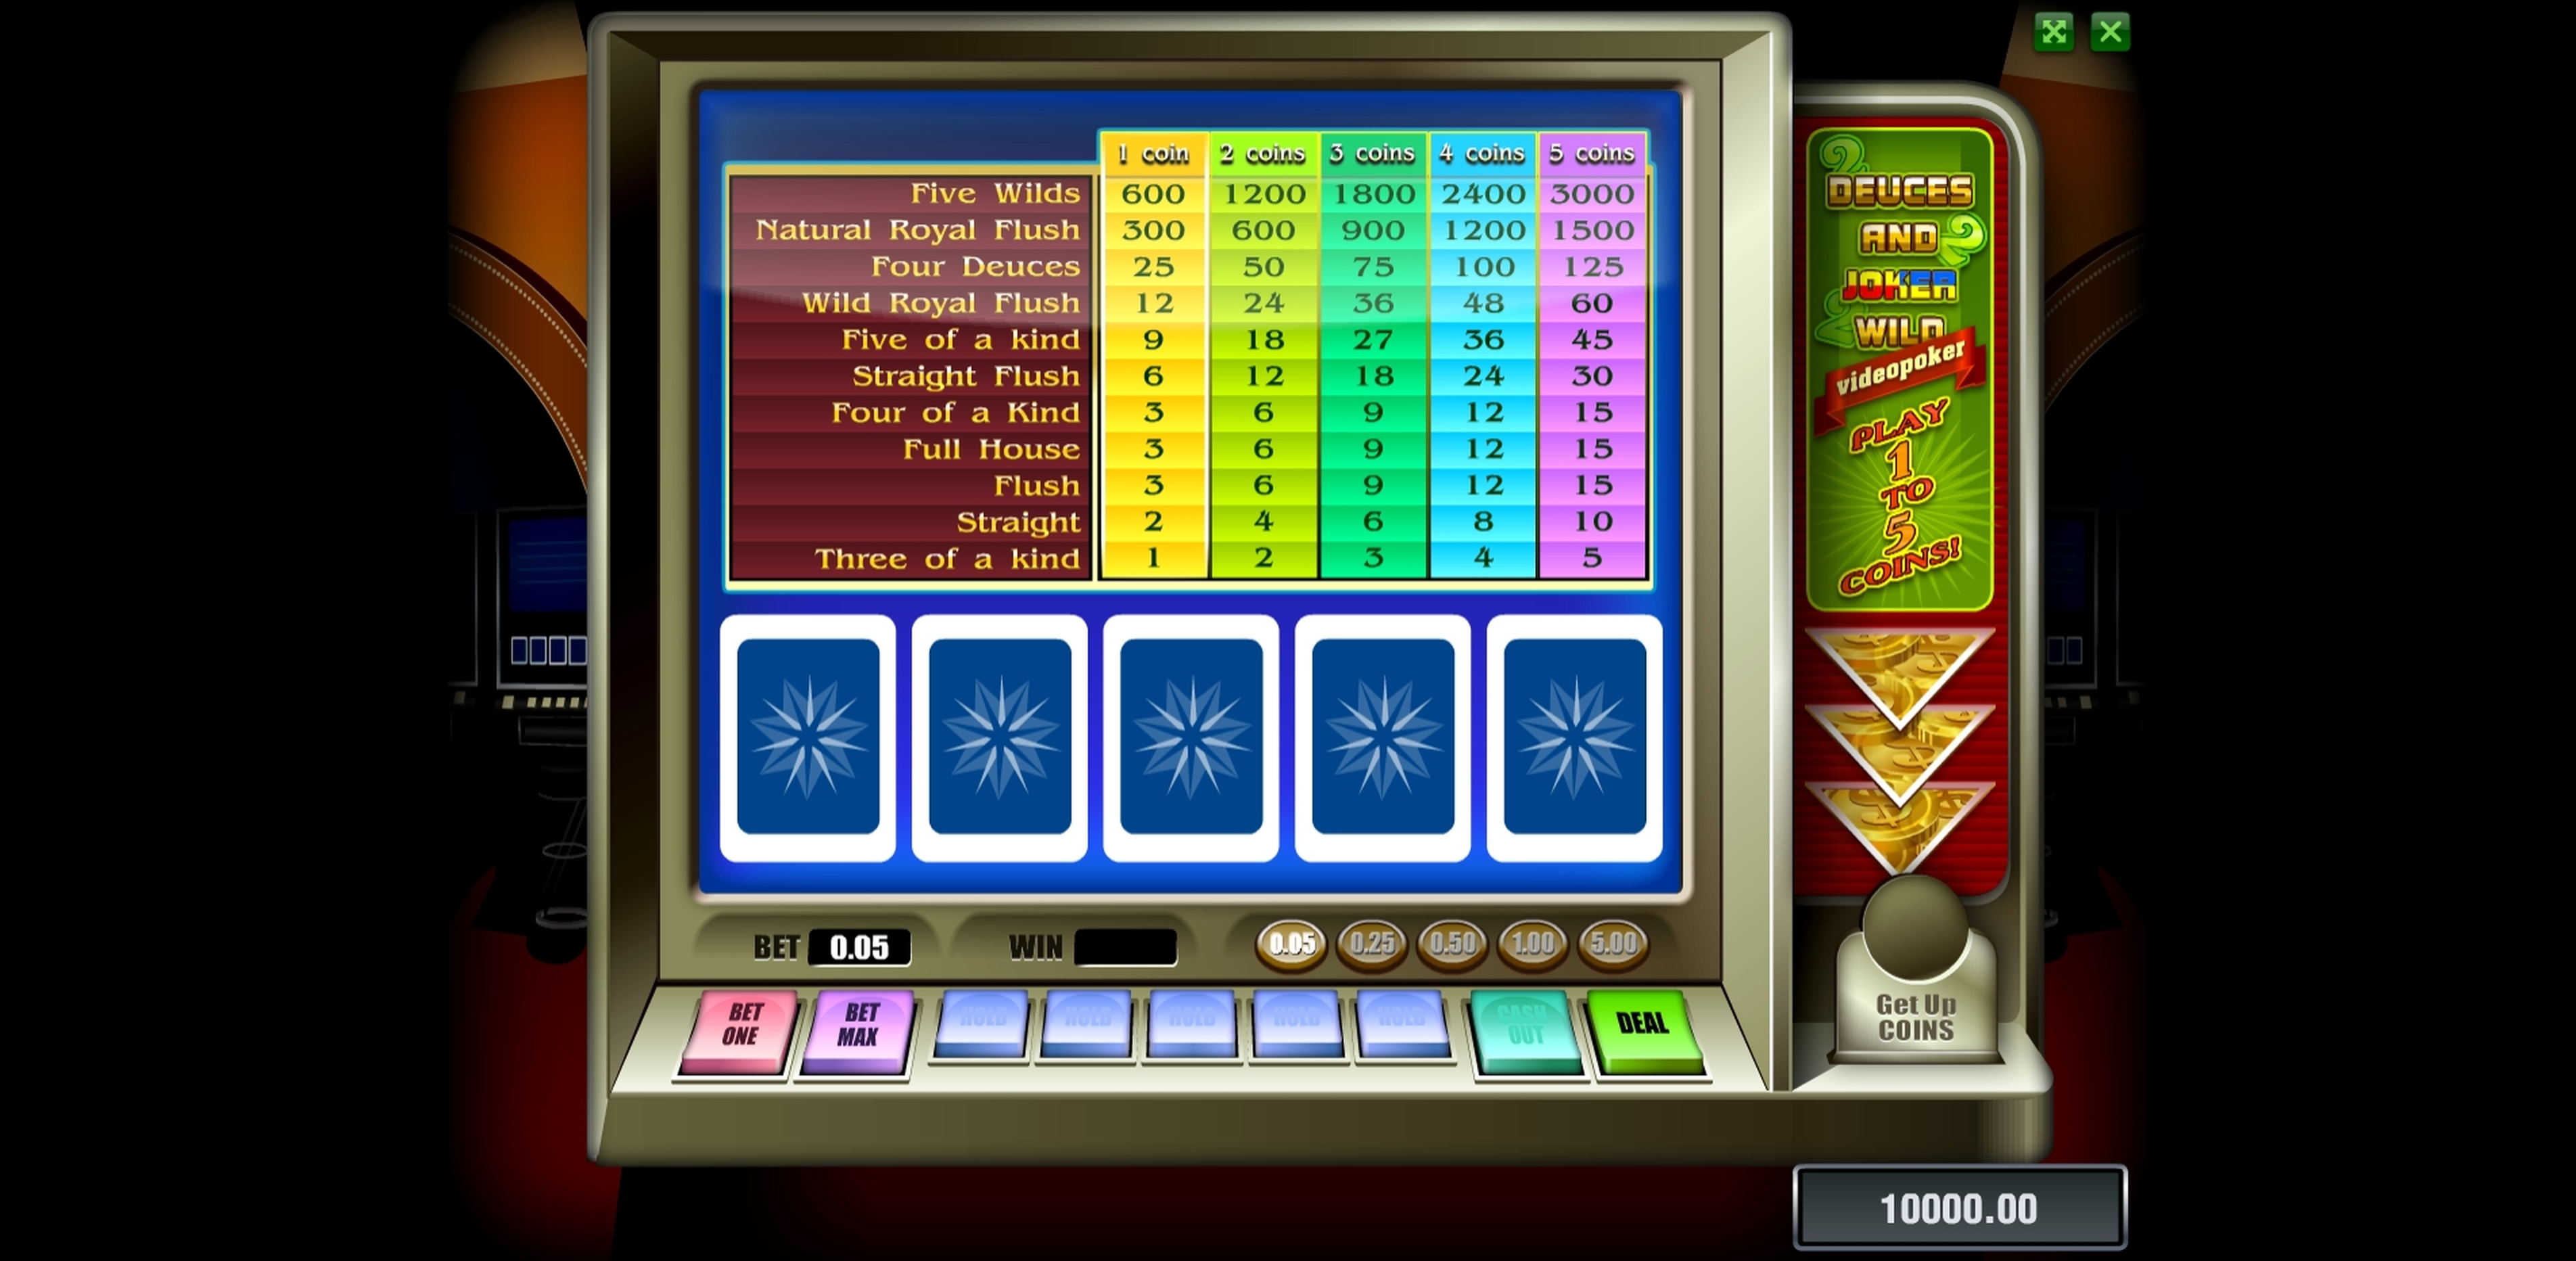 Reels in Deuces And Joker (Novomatic) Slot Game by Novomatic